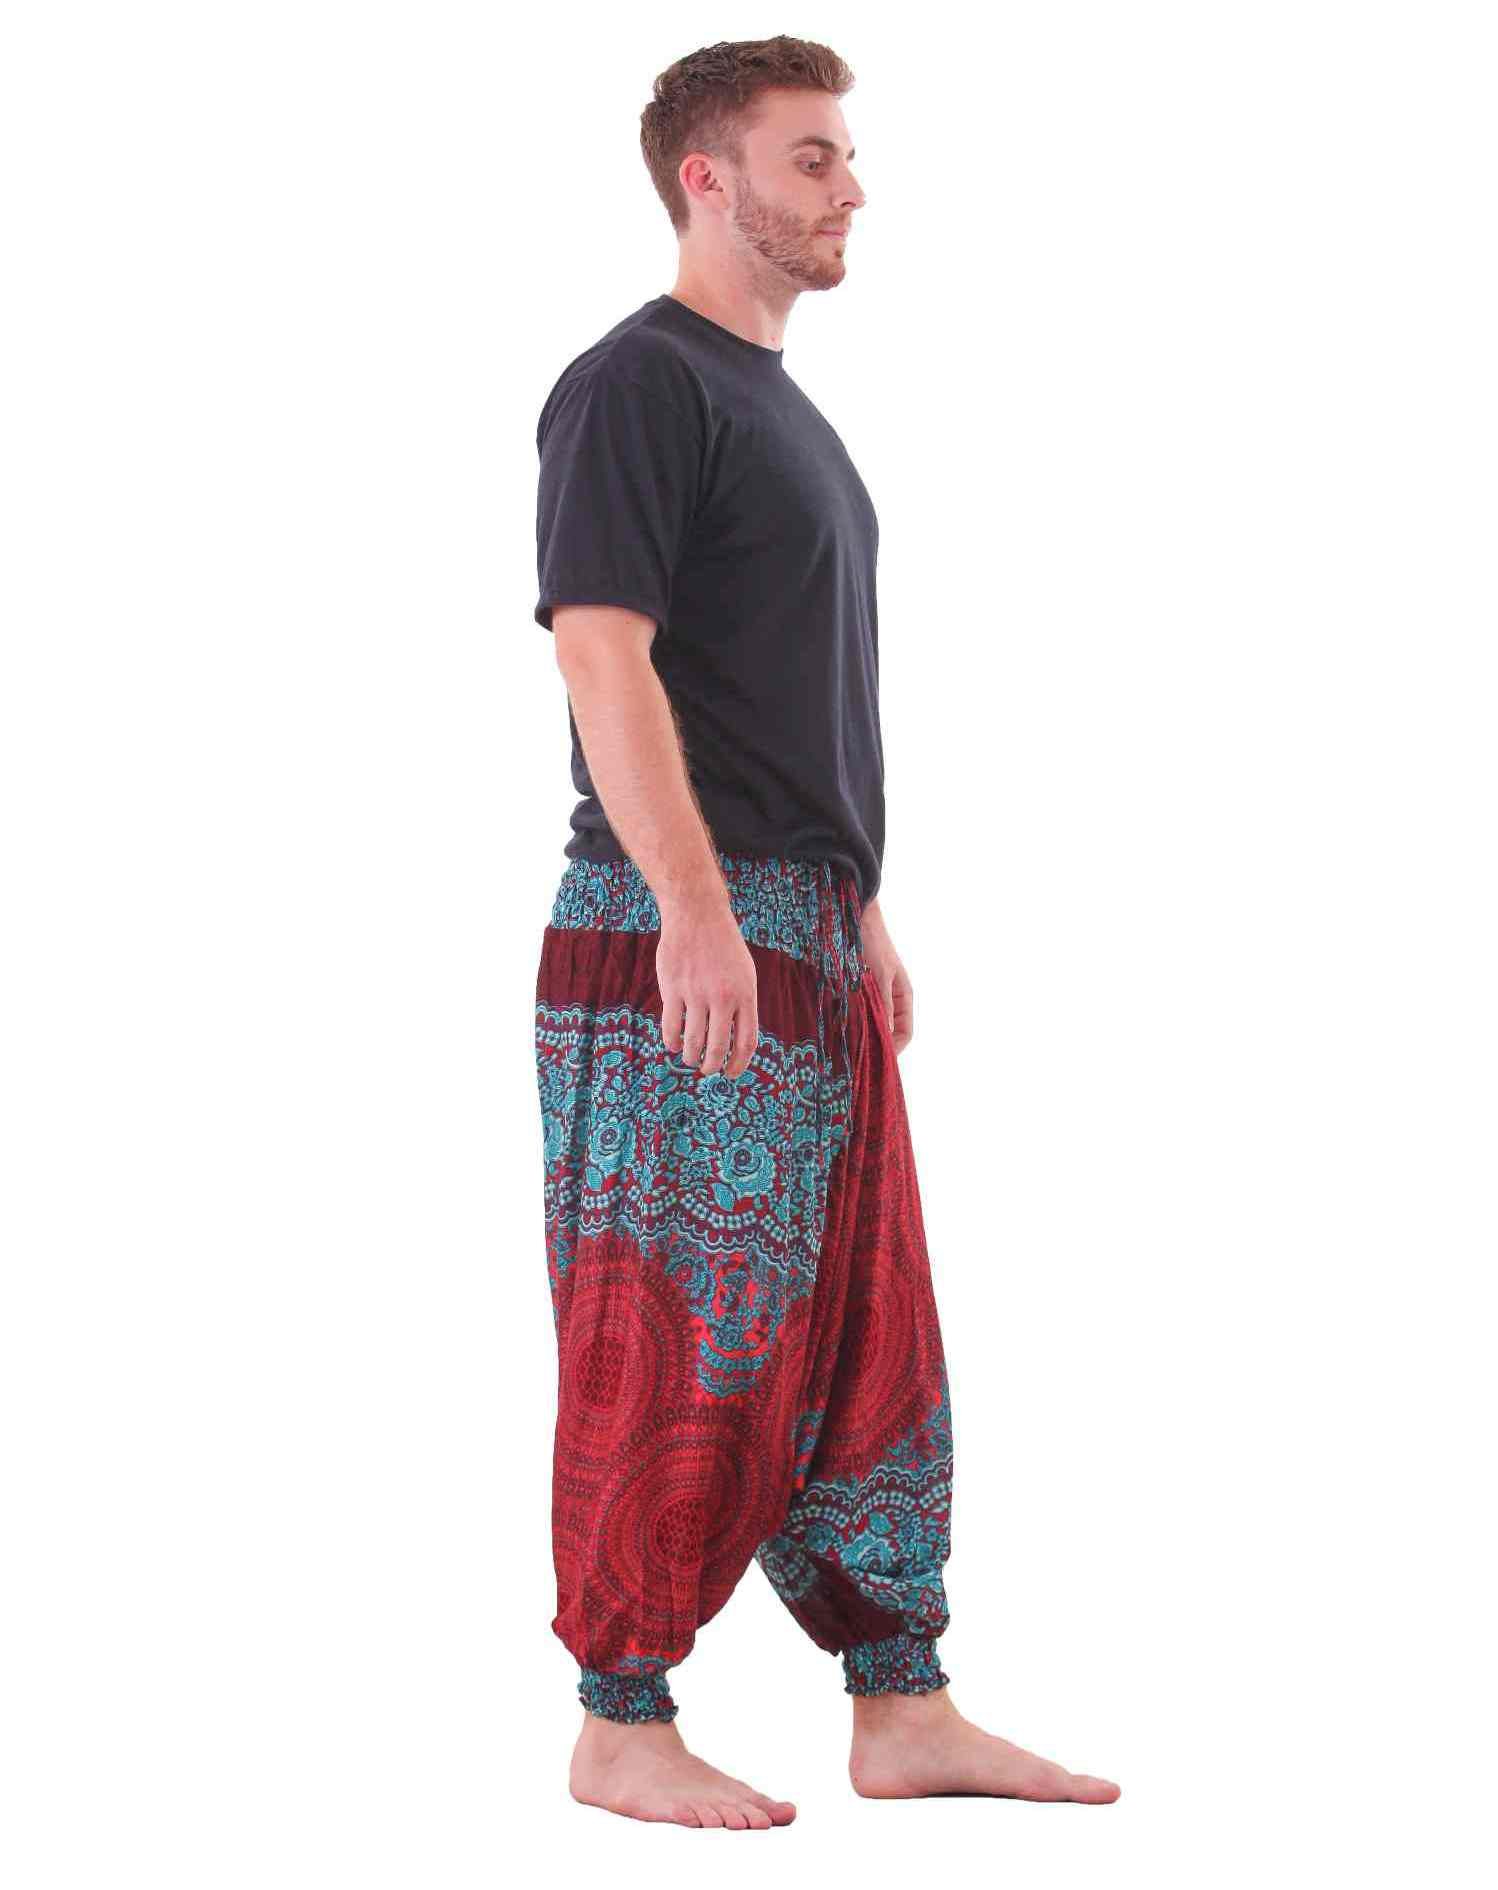 Mandala Harem Hippie Pants Drop Crotch in Red & Turquoise